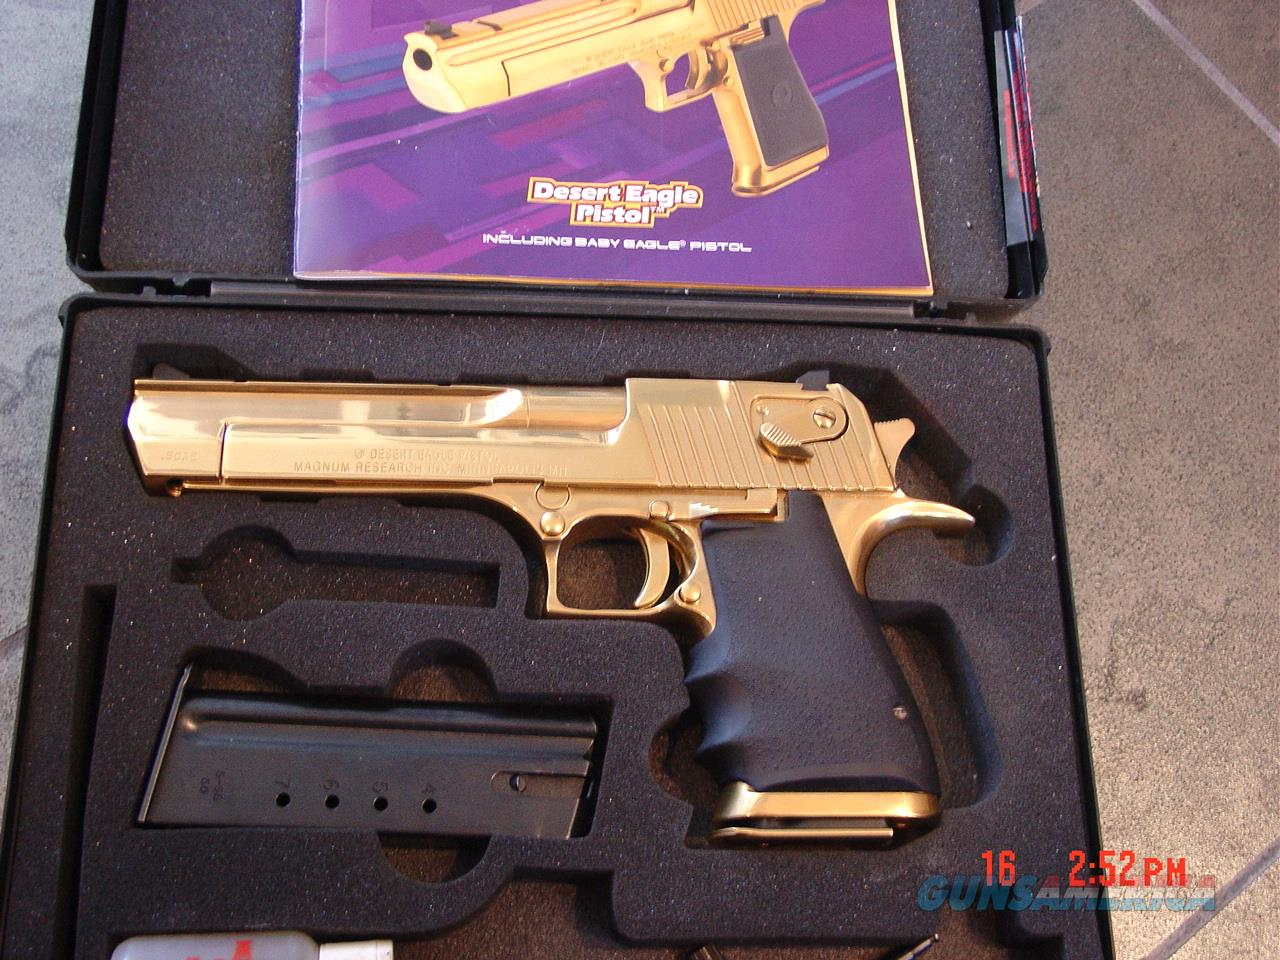 Magnum Research IMI Desert Eagle50AEbright High Gloss Titanium Goldmade